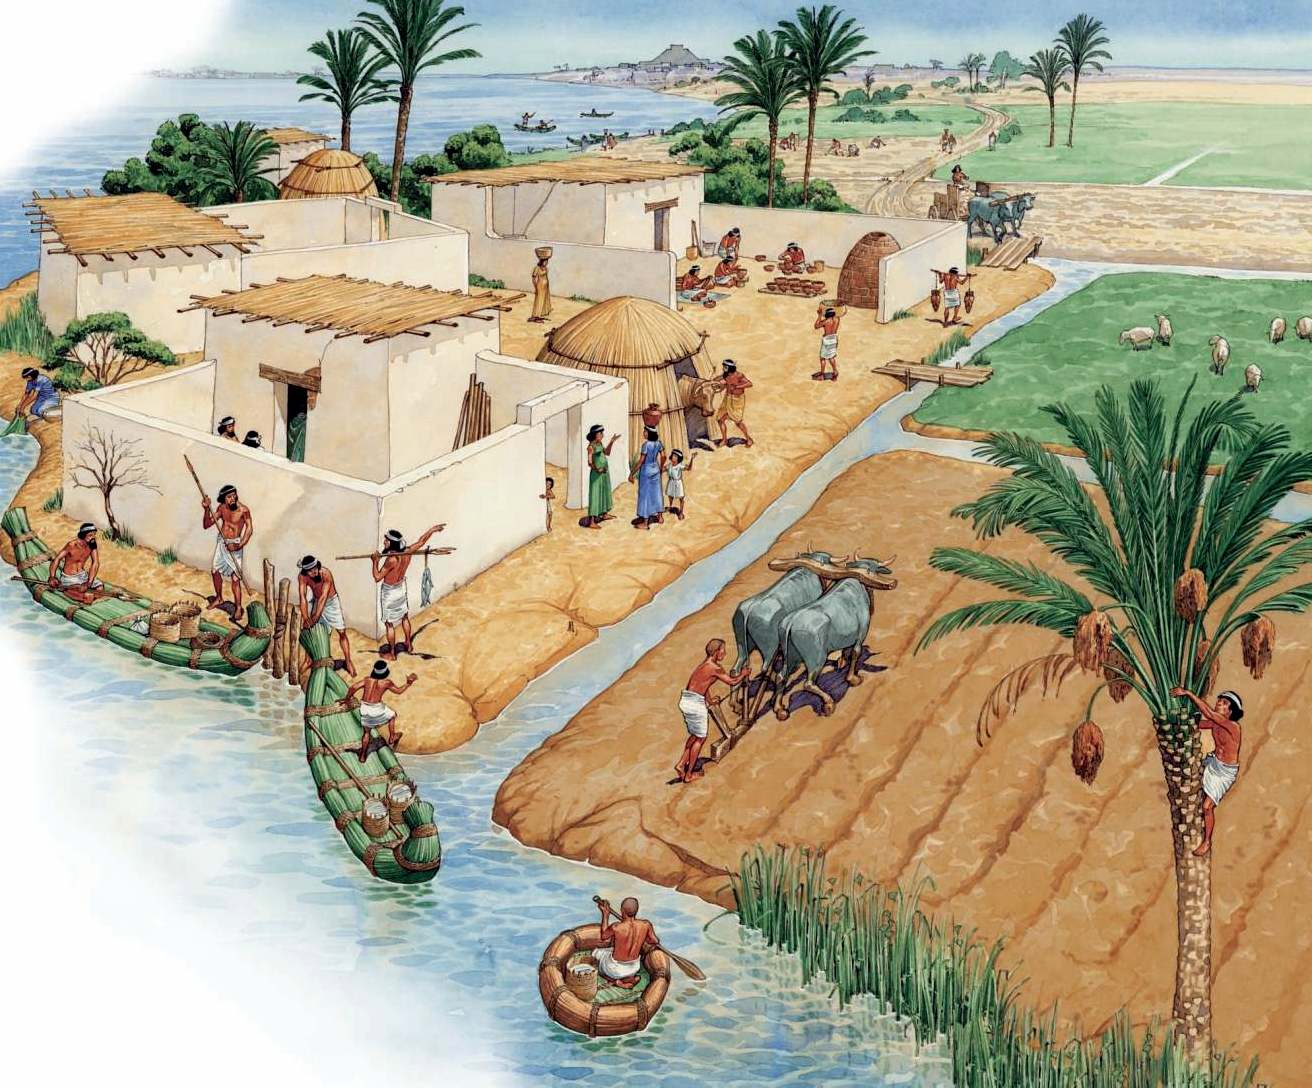 egypt and mesopatamia Egypt and mesopotamia's economy, political societies, agriculture, geography, culture, and religion varies in more ways than one may realize in the views of egyptian and mesopotamian geography, they're at variance from each other.